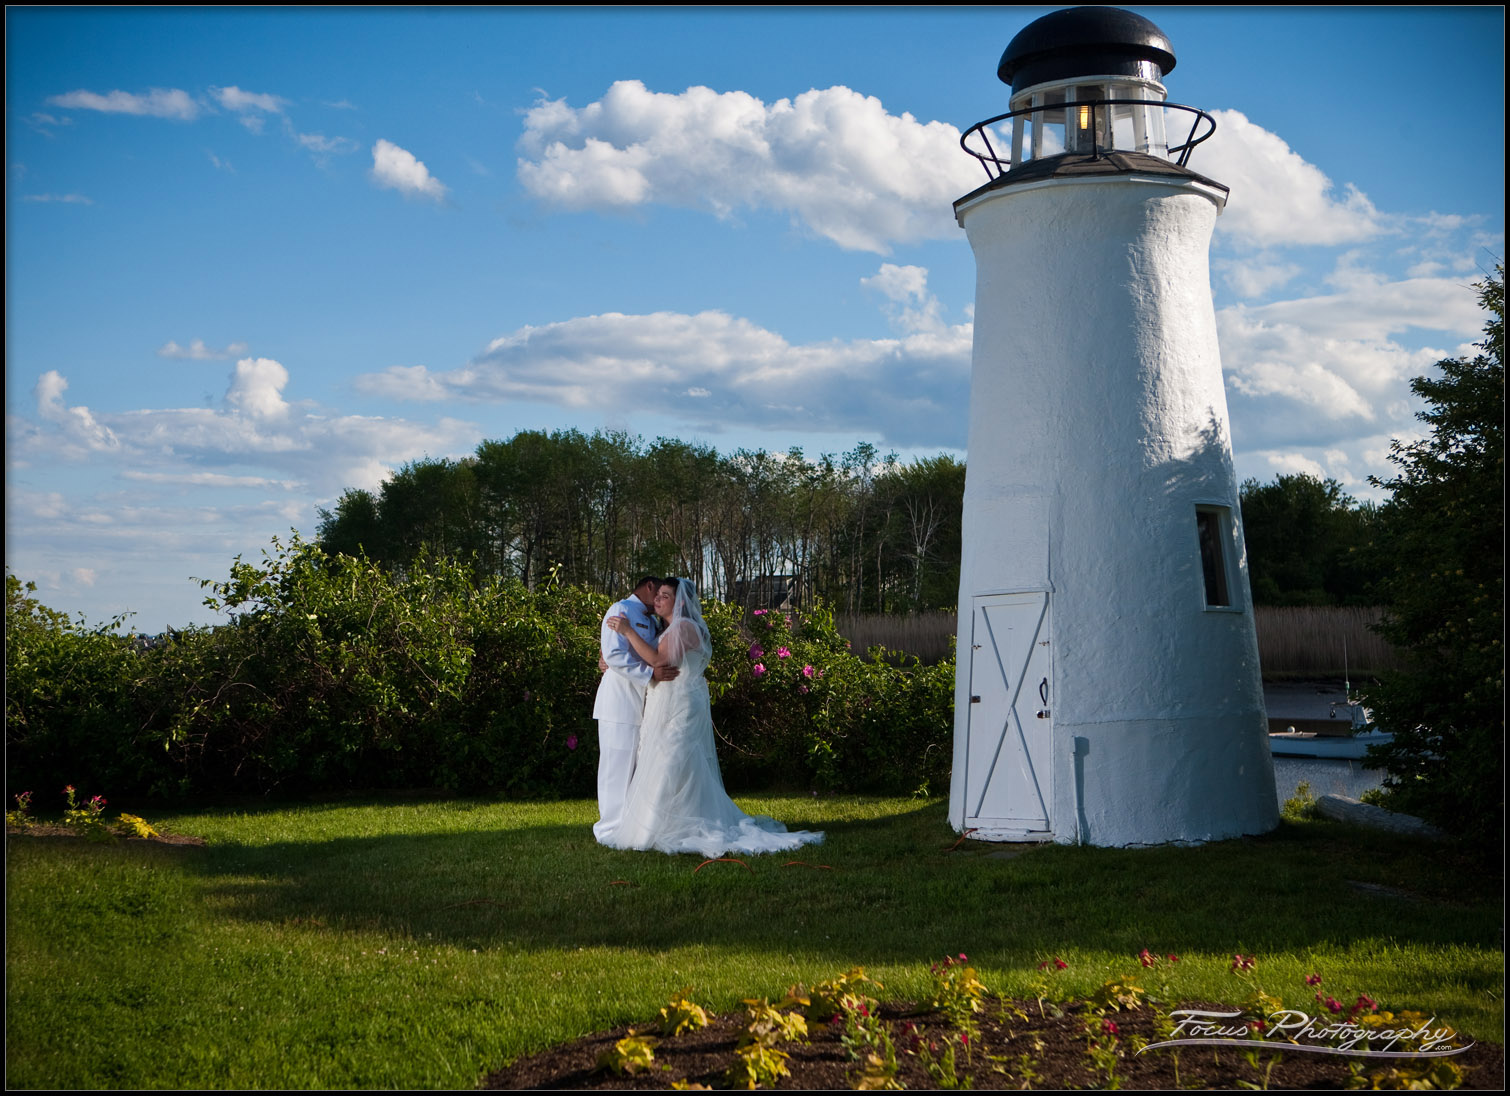 The wedding ceremony was performed under the watch of this lighthouse